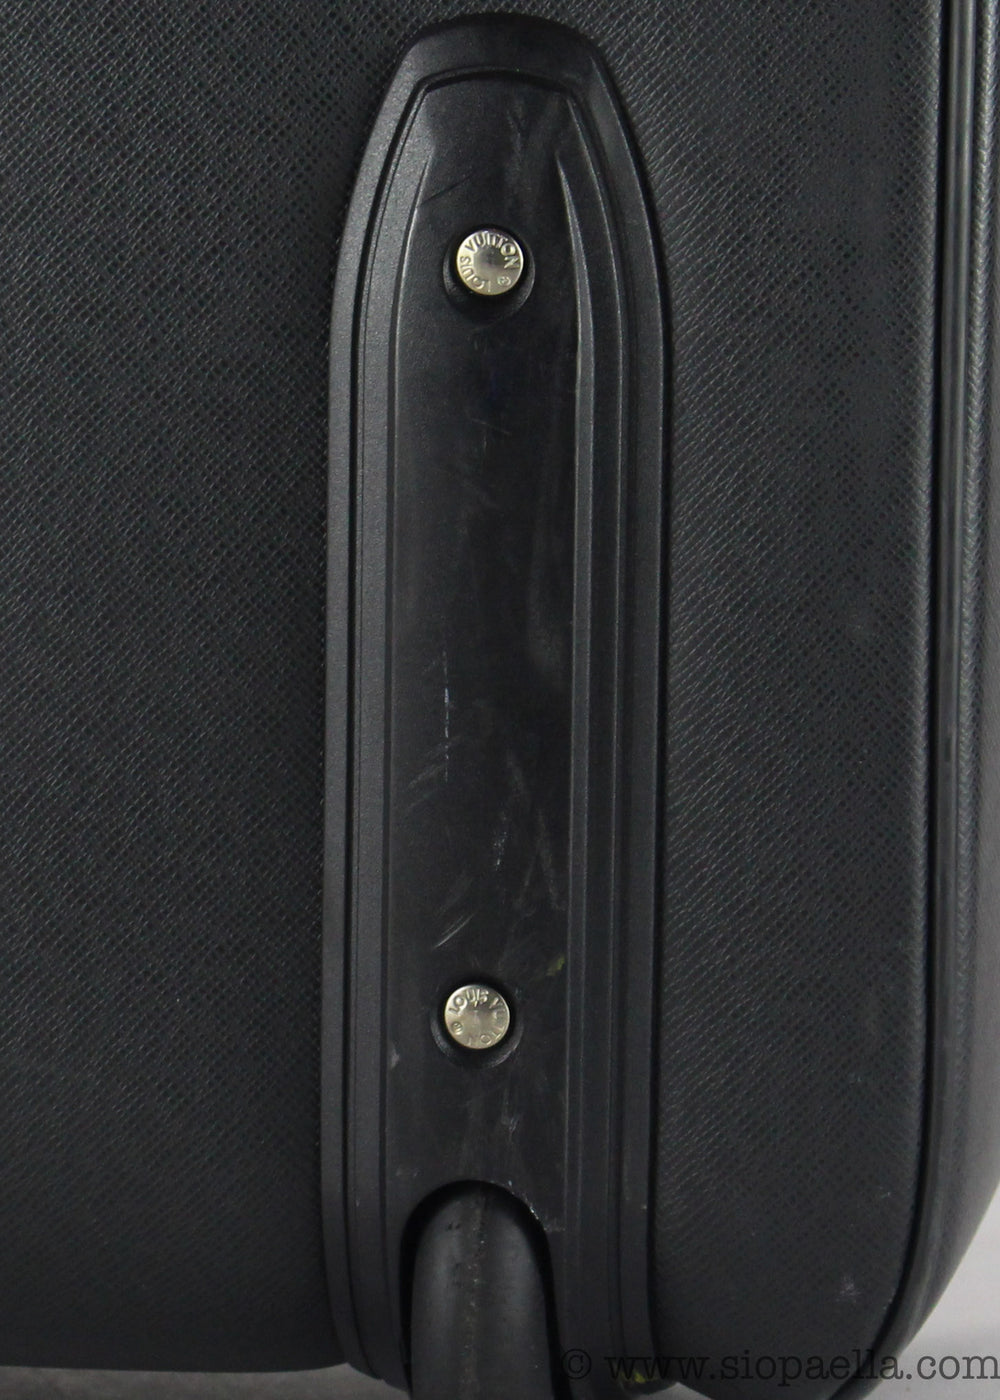 Louis Vuitton Pégase 55 Business Suitcase - Siopaella Designer Exchange